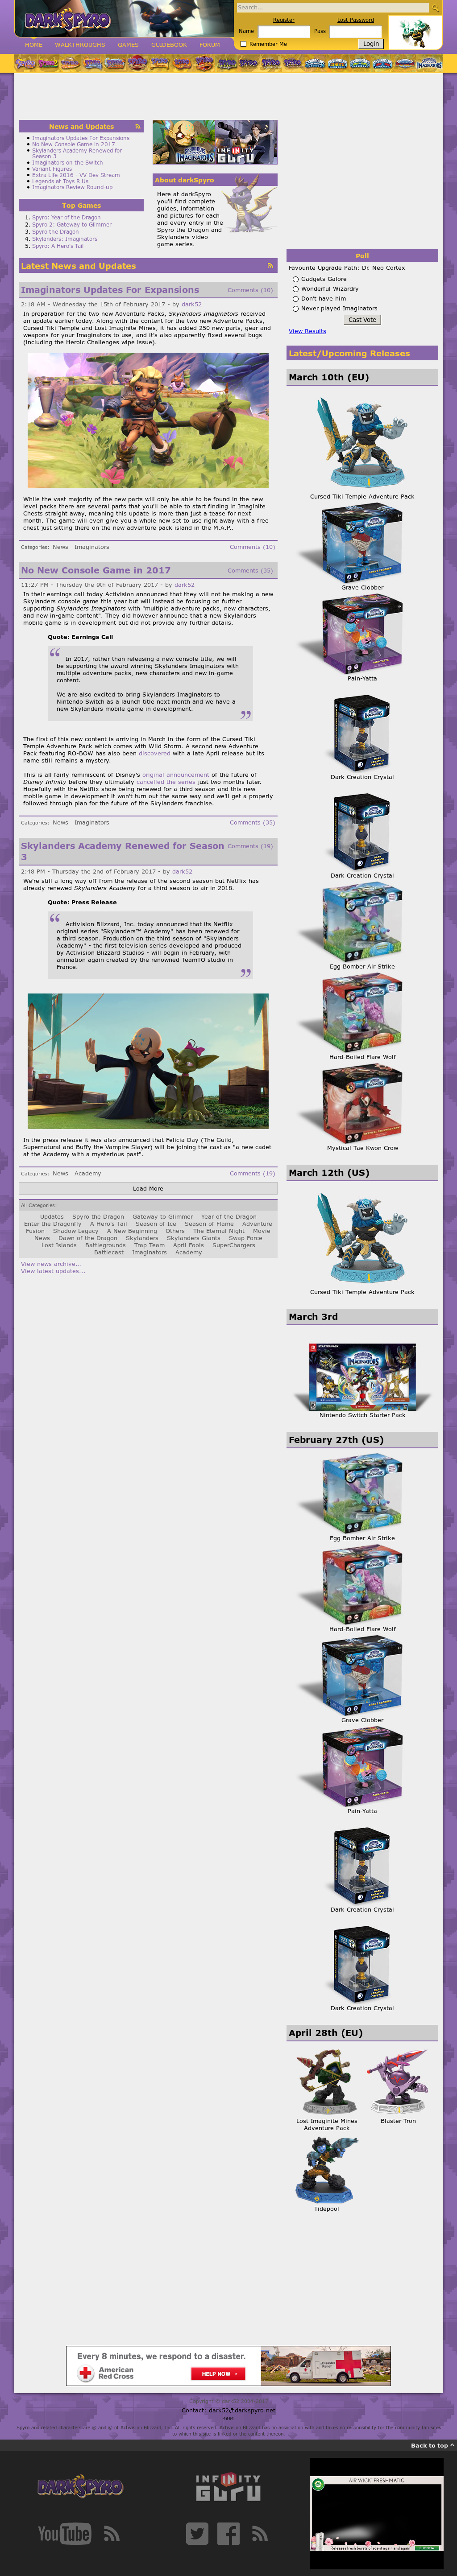 Darkspyro Competitors Revenue And Employees Owler Company Profile 3 Way Switch Animation Website History